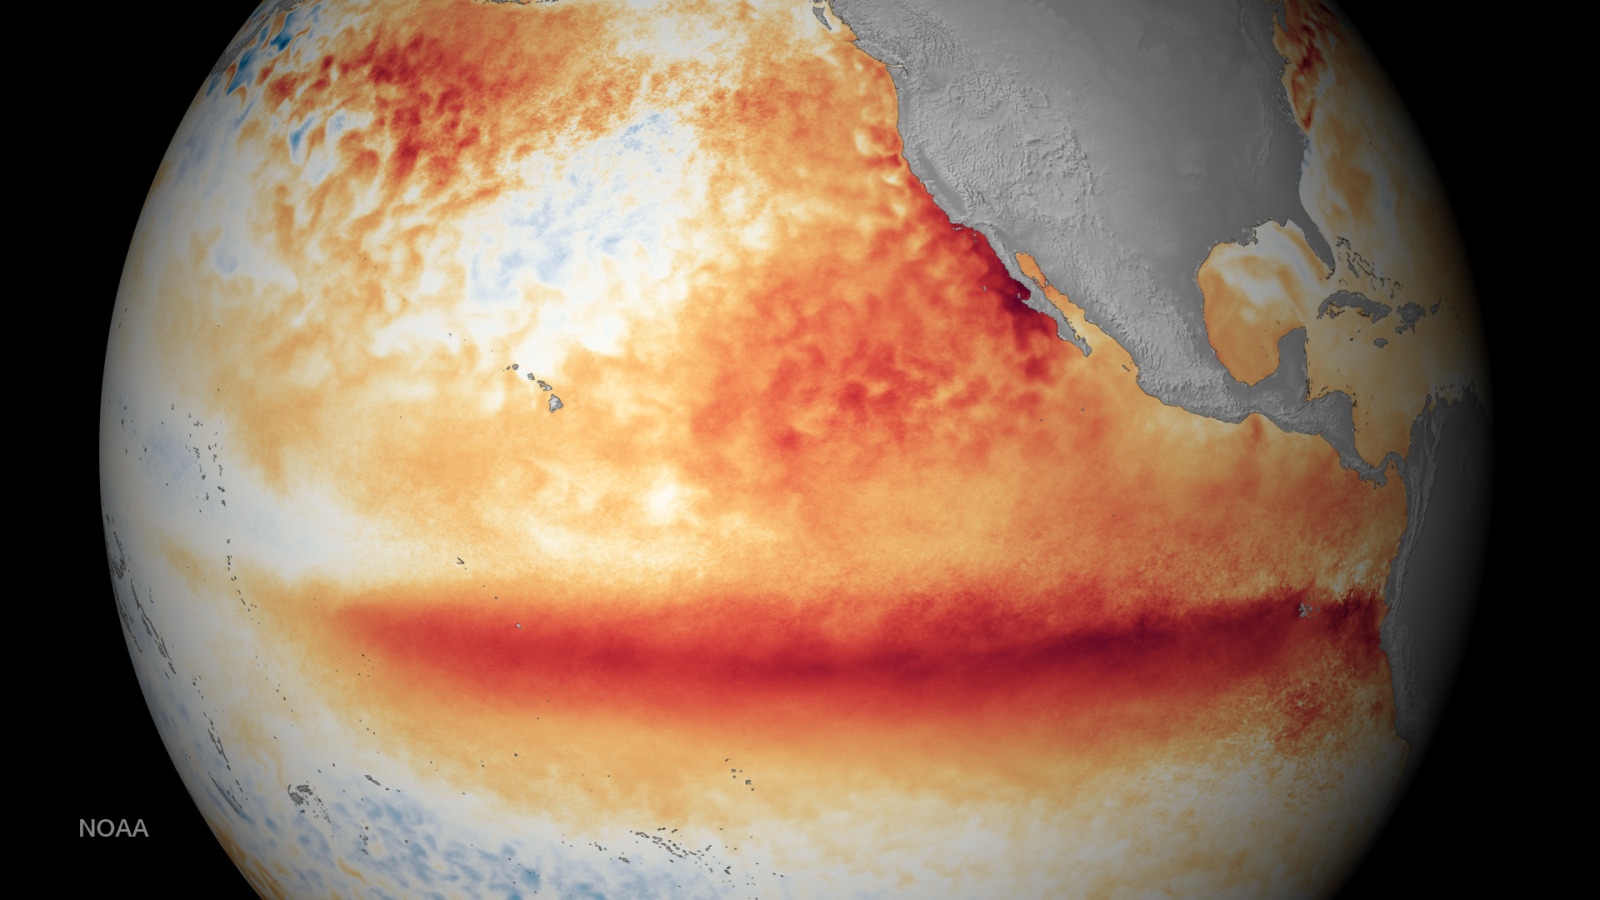 The 2015-2016 El Niño was among the strongest on record. This image shows the satellite sea surface temperature departure for the month of October 2015, where orange-red colors are above normal temperatures and are indicative of El Niño. Source: NOAA